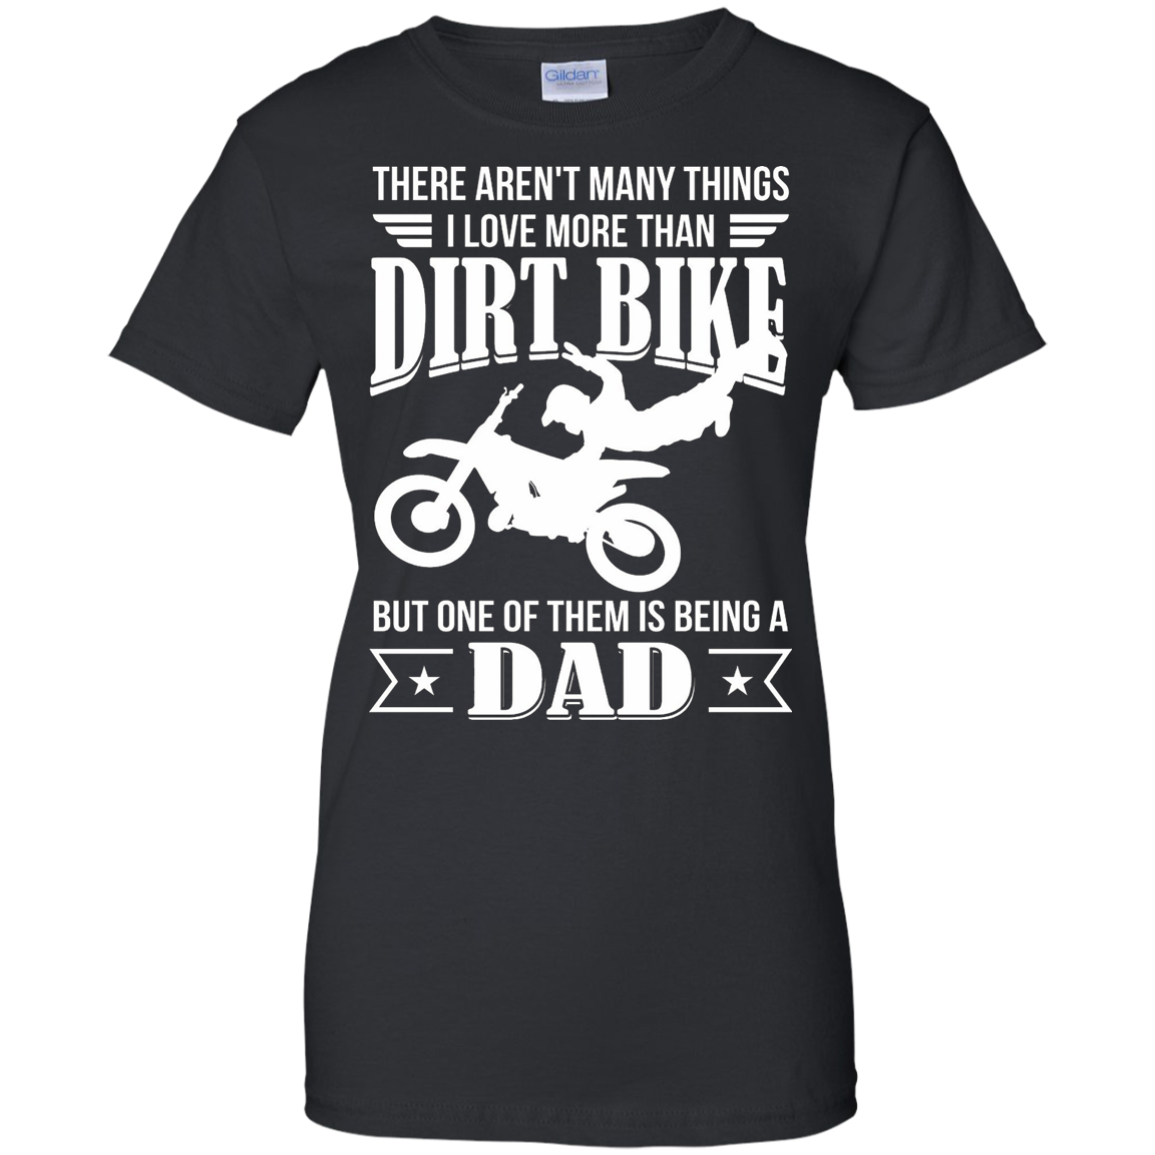 There Aren't Many Things I Love More Than Dirt Bike T-shirt